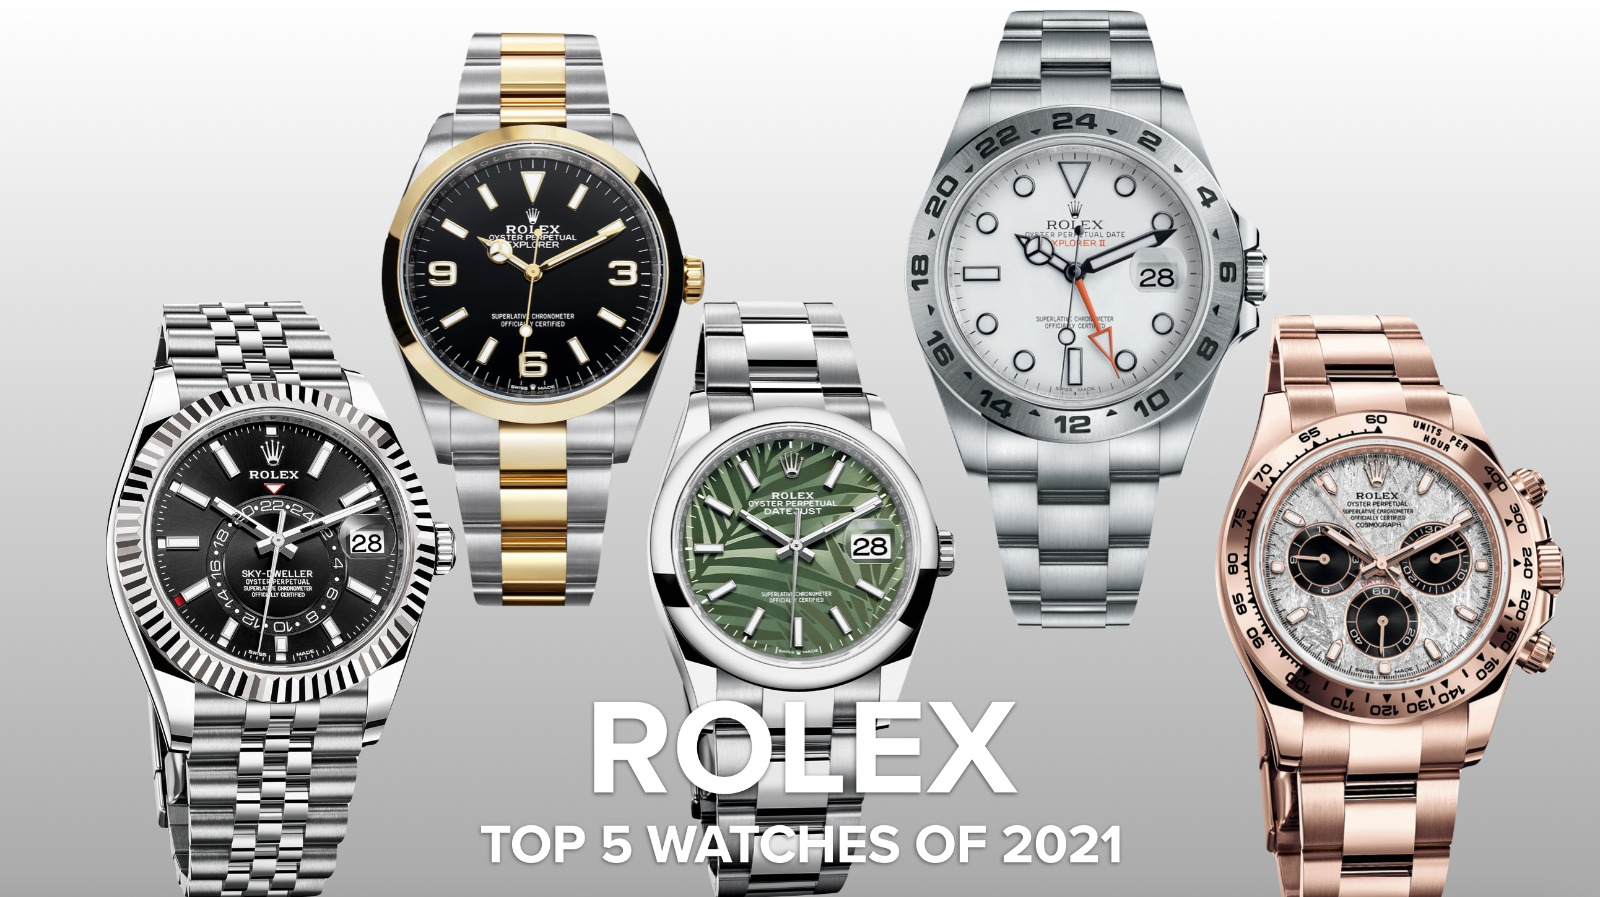 Supercollector Eric Ku responds to the 5 key 2021 Rolex releases in this candid video